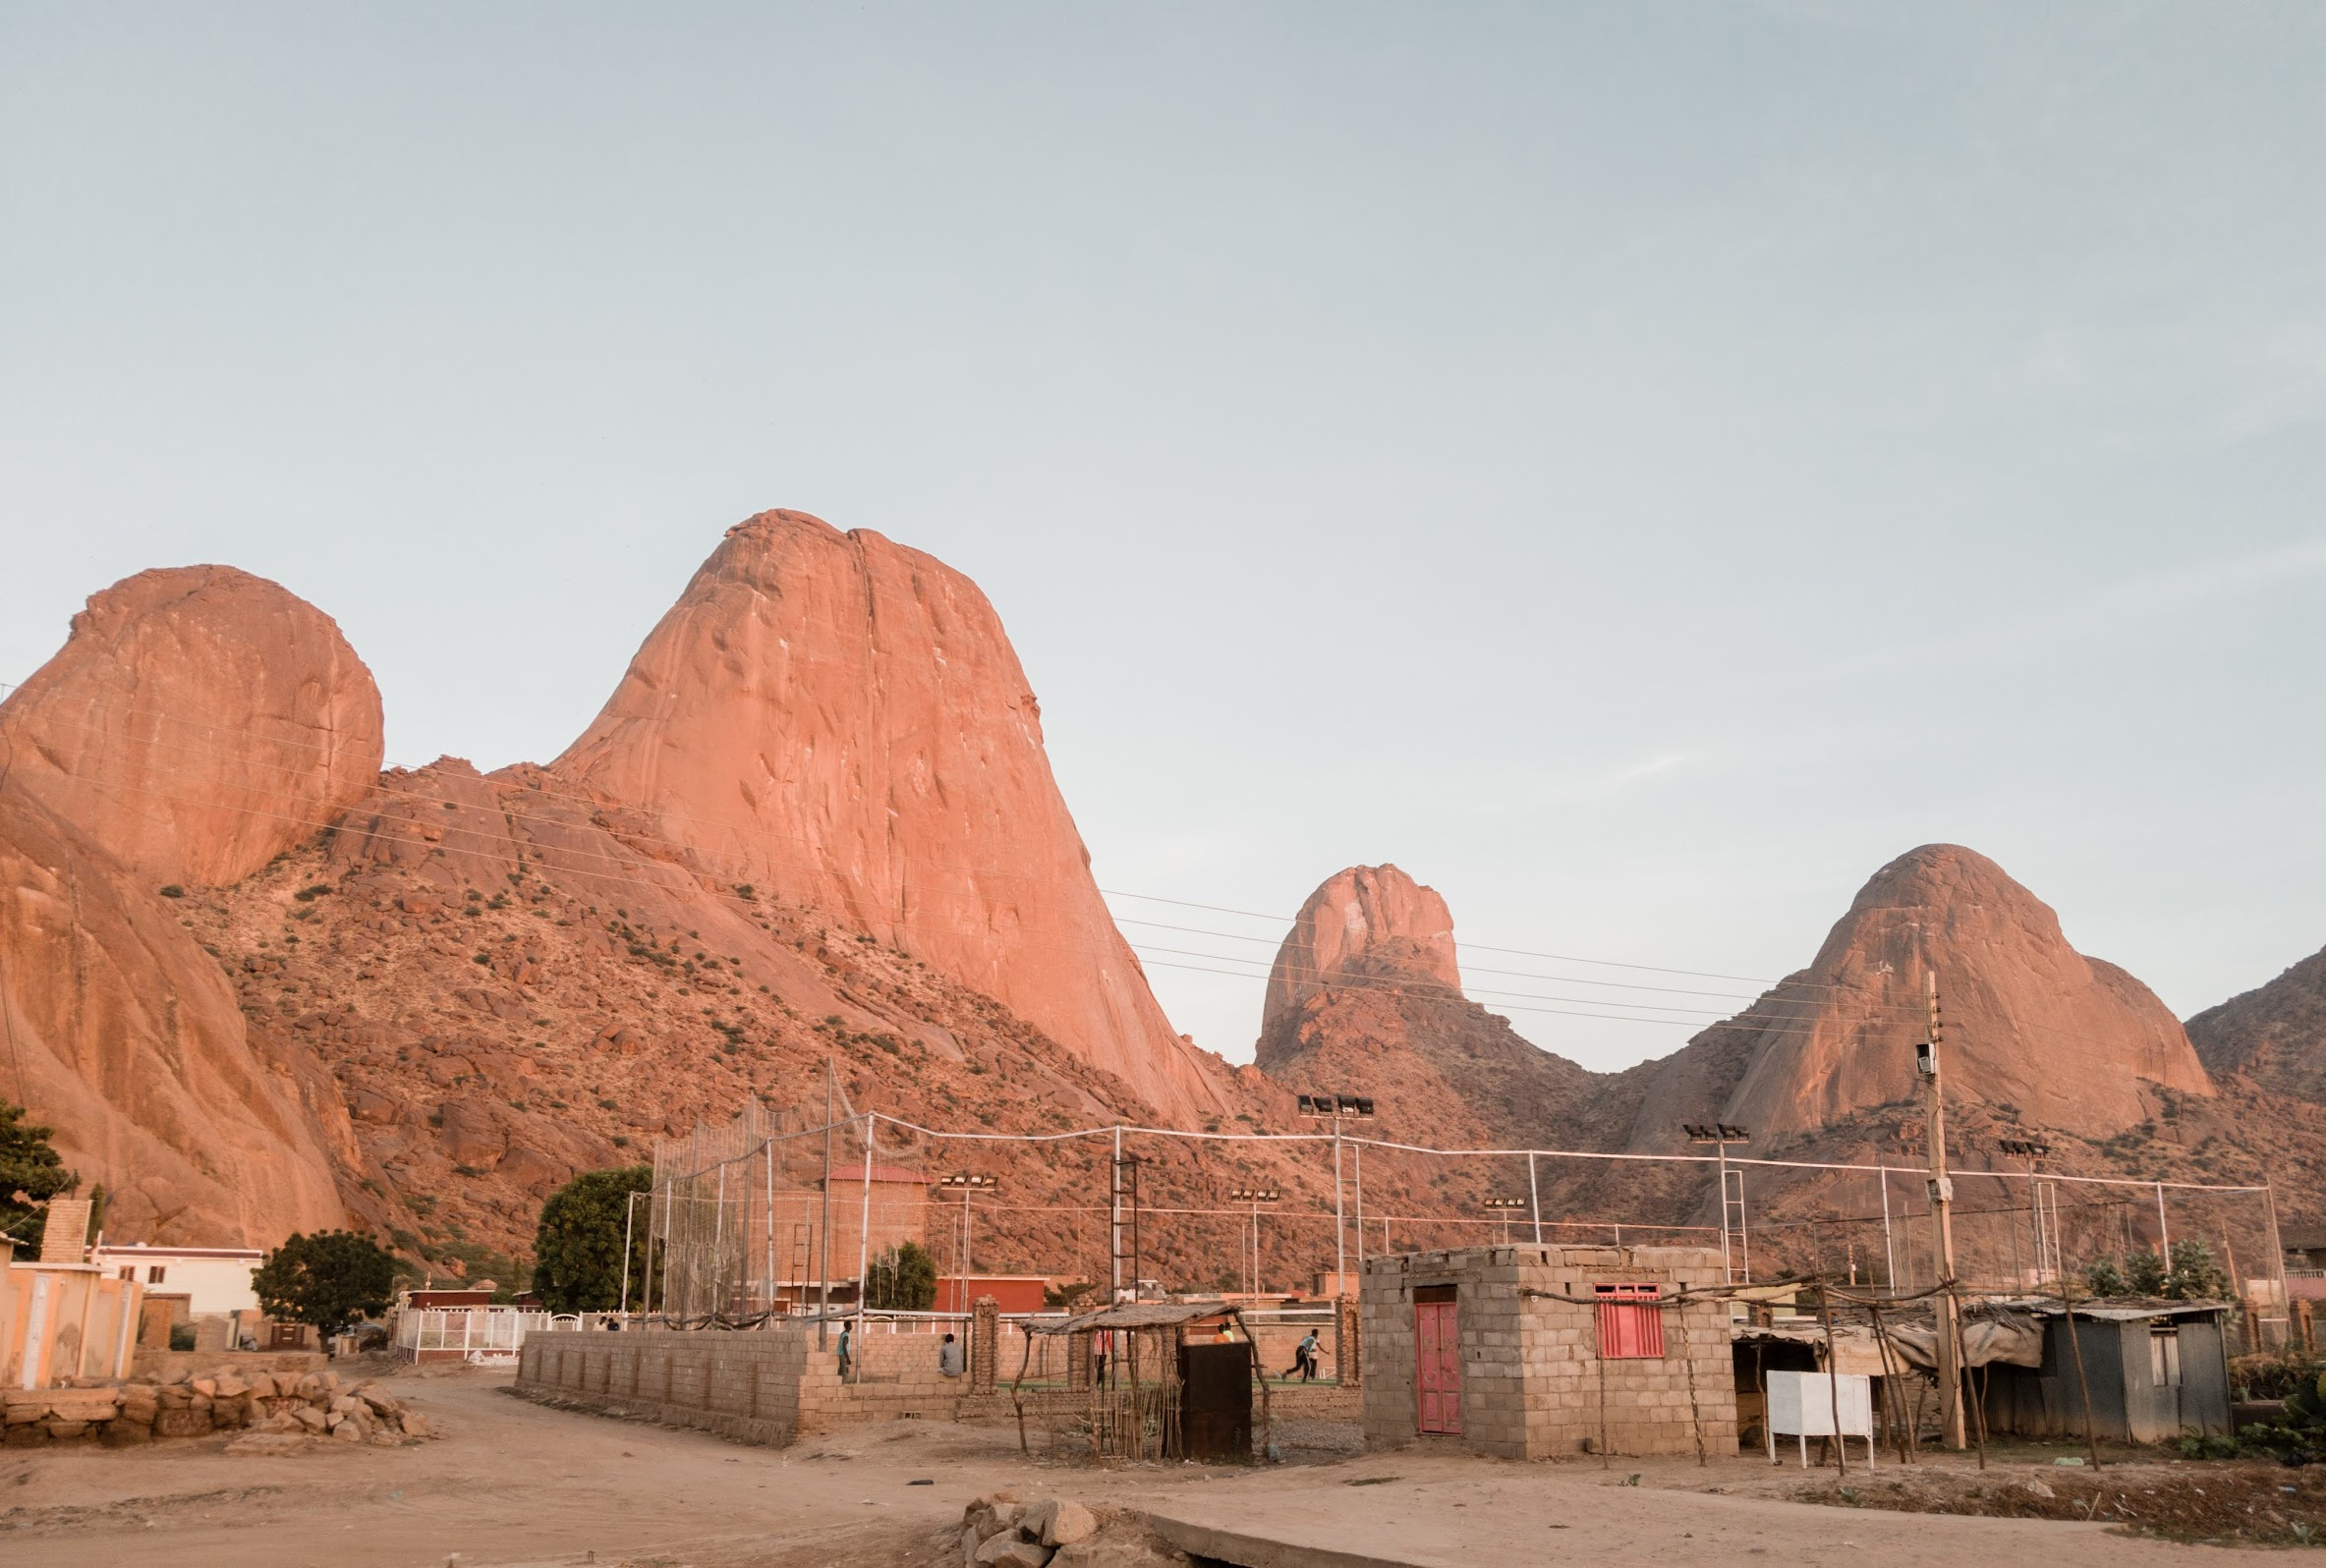 Khatmiya neighborhood at the foot of Taka Mountains in Kassala.